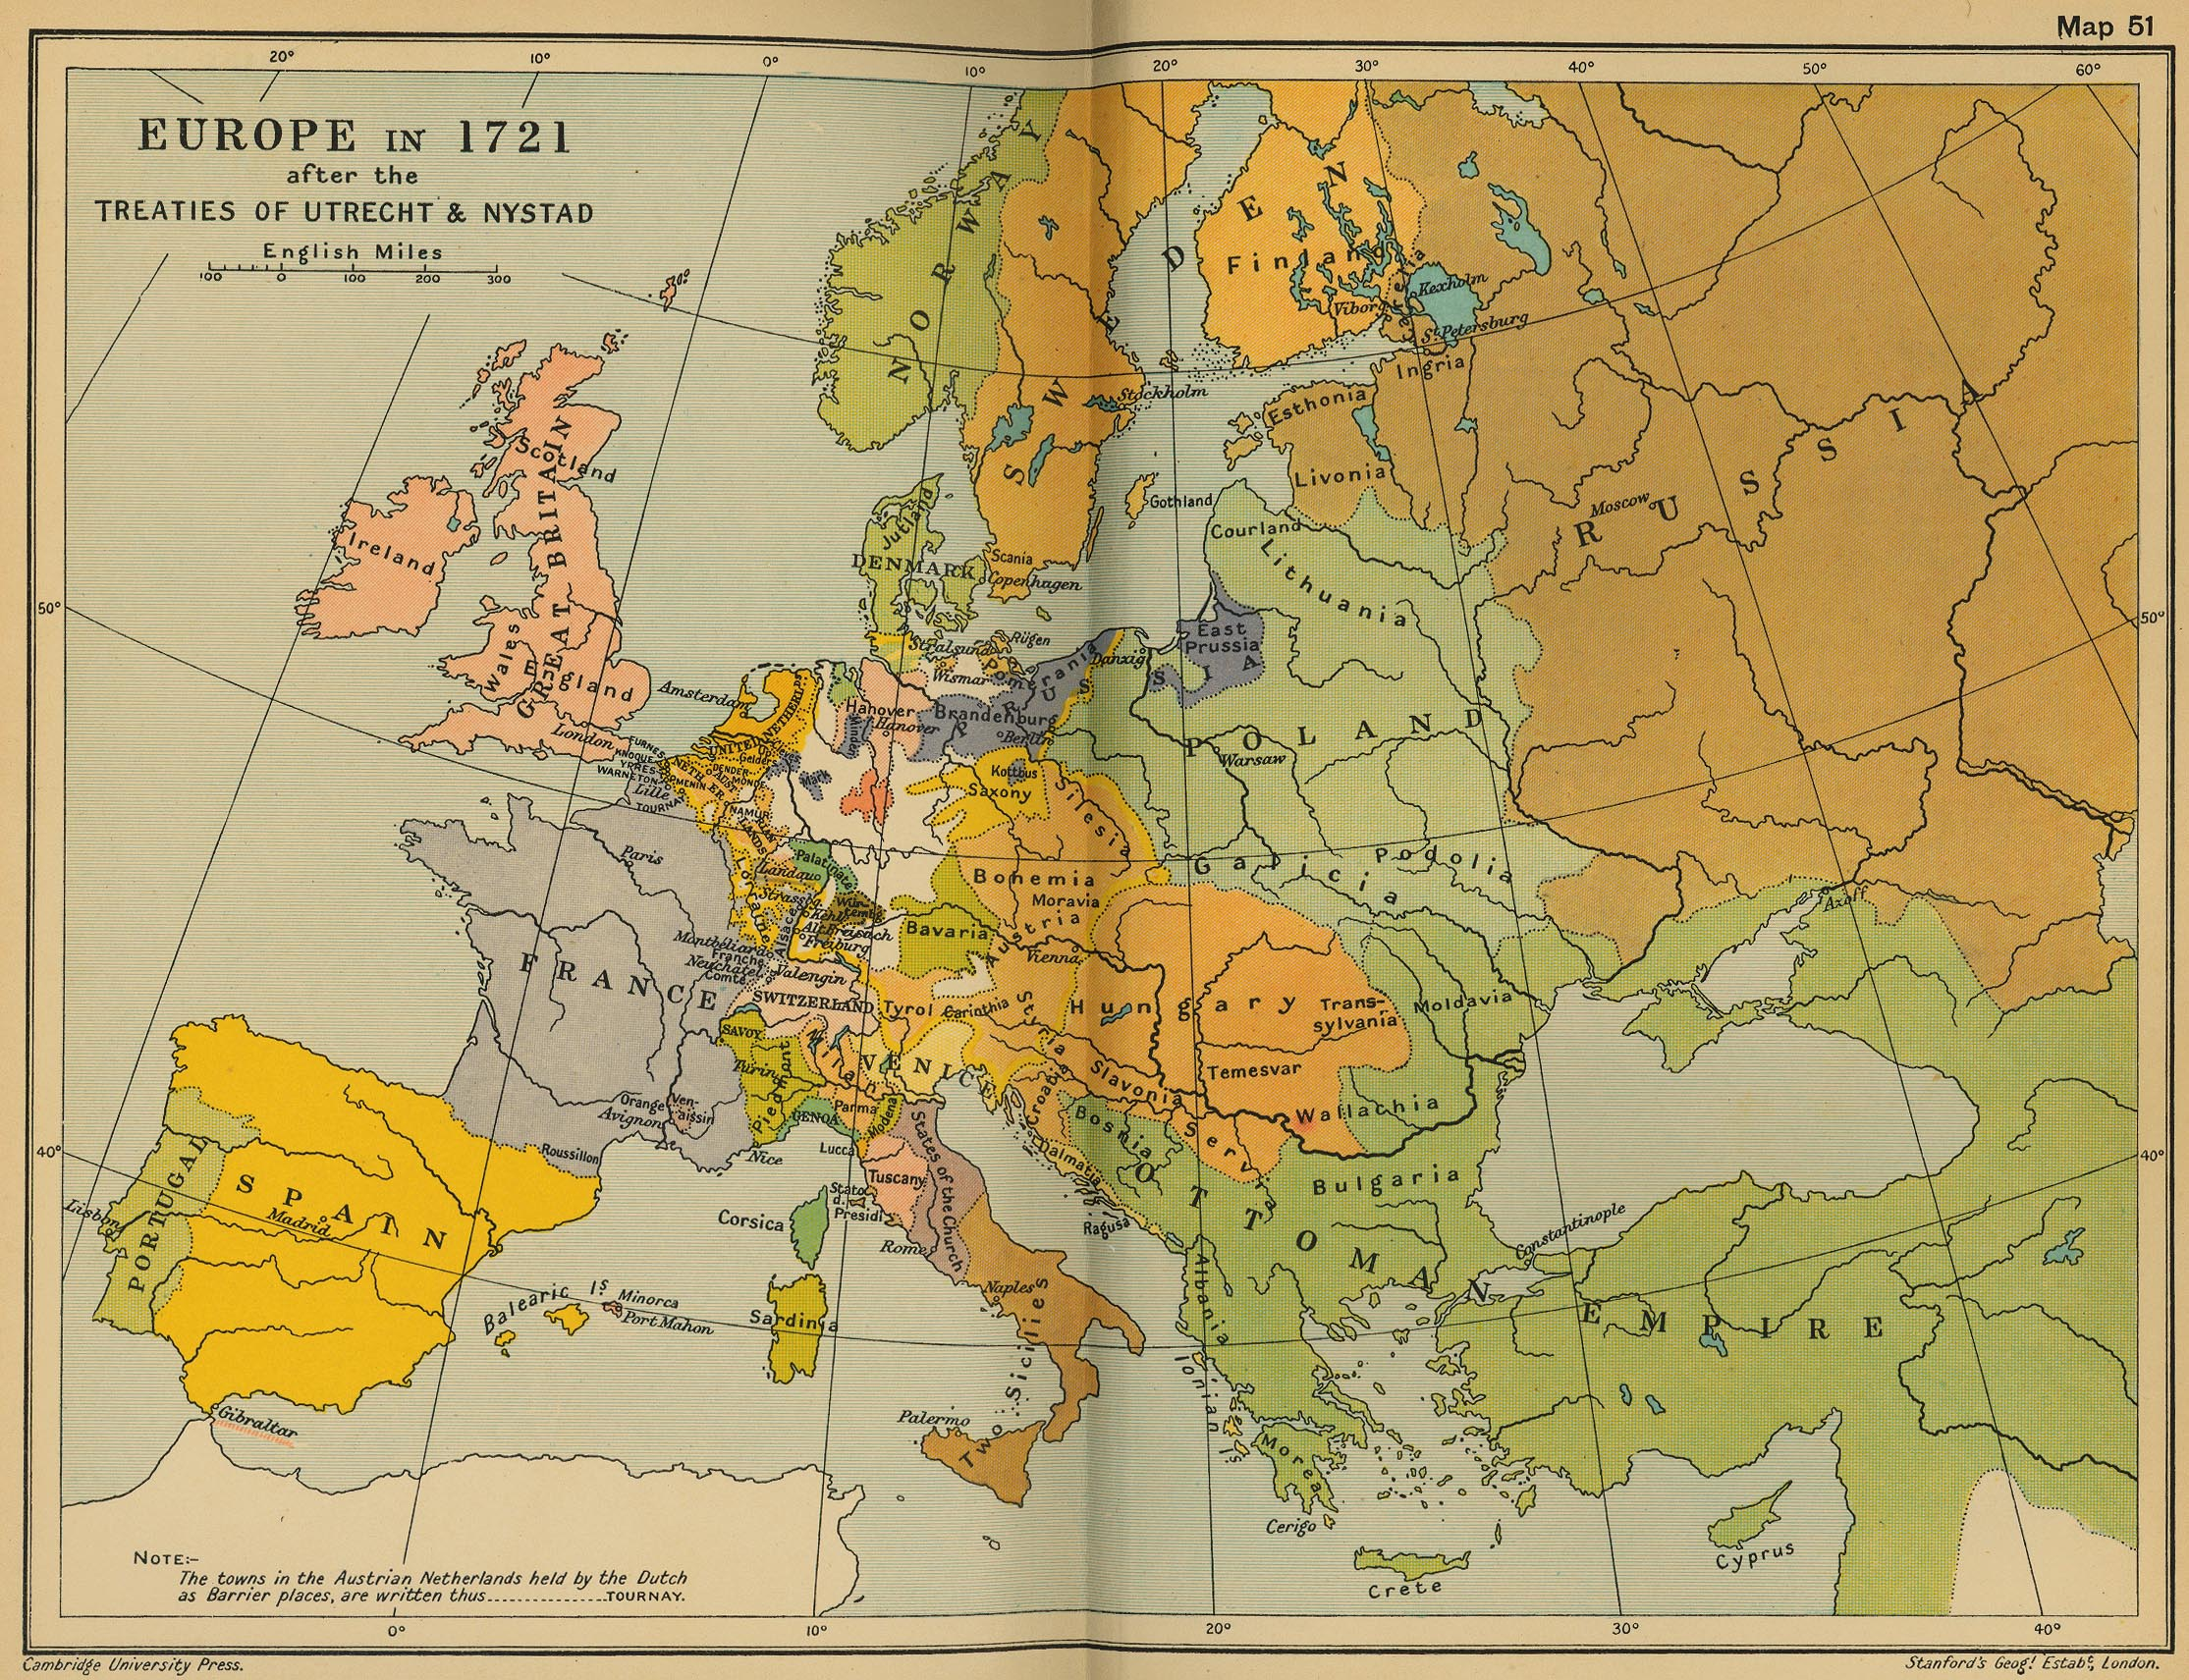 Map of Europe in 1721